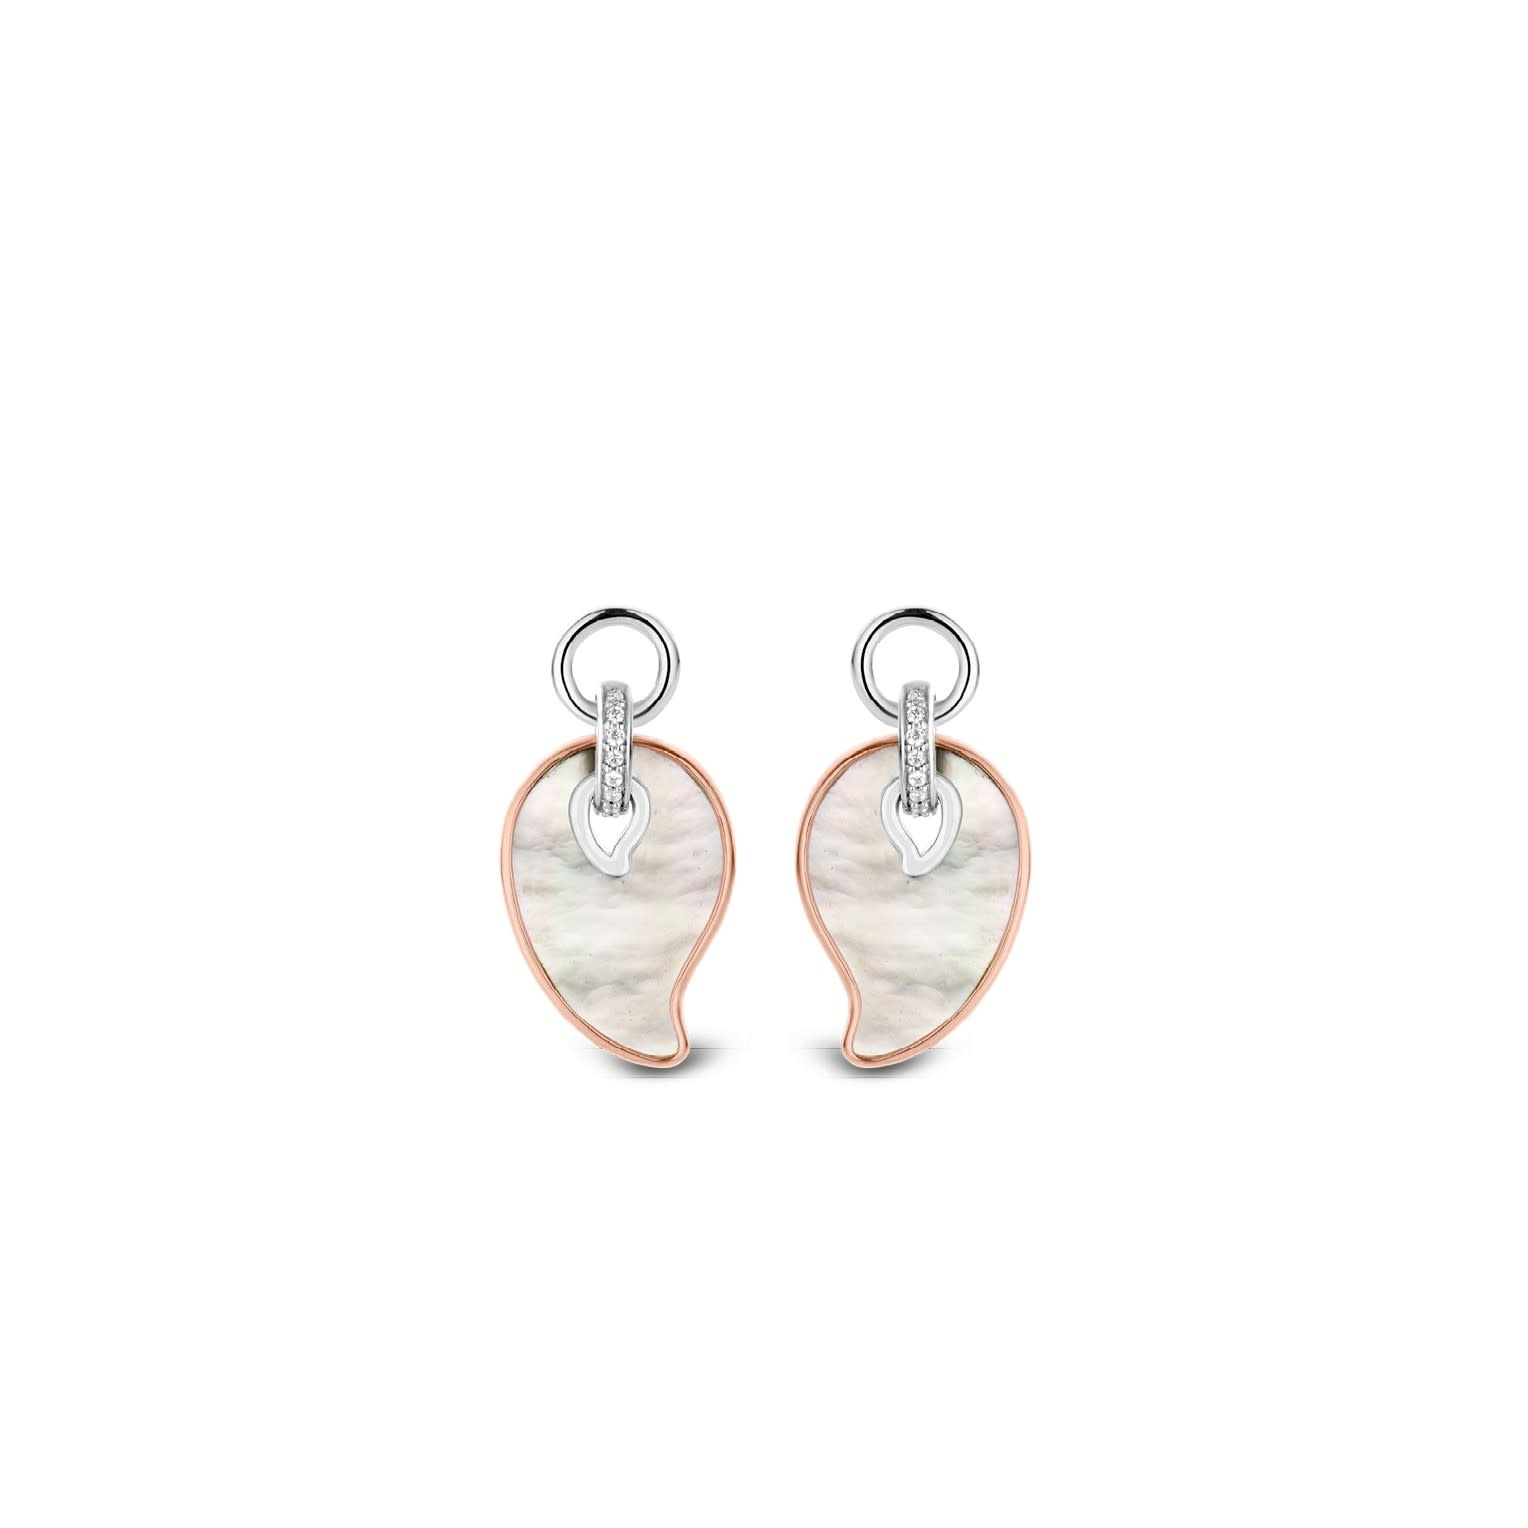 TI SENTO - Milano Ear Charms 9201MR-1